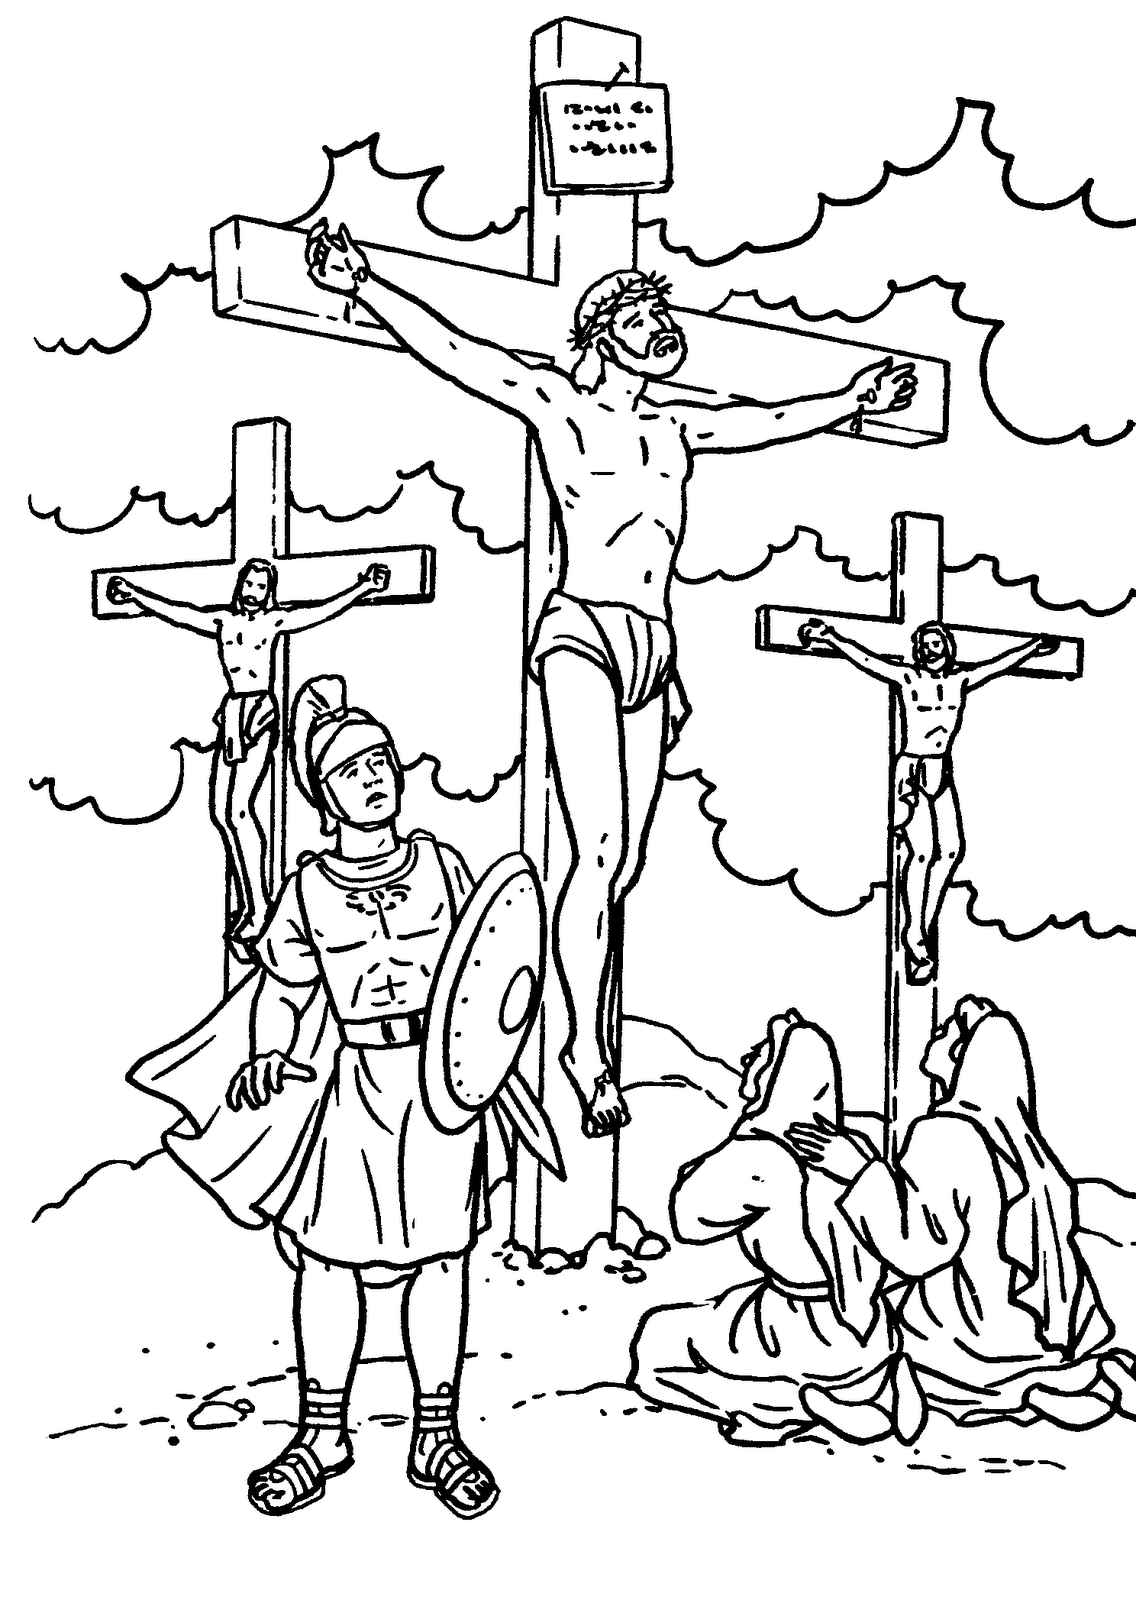 jesus died on cross coloring page